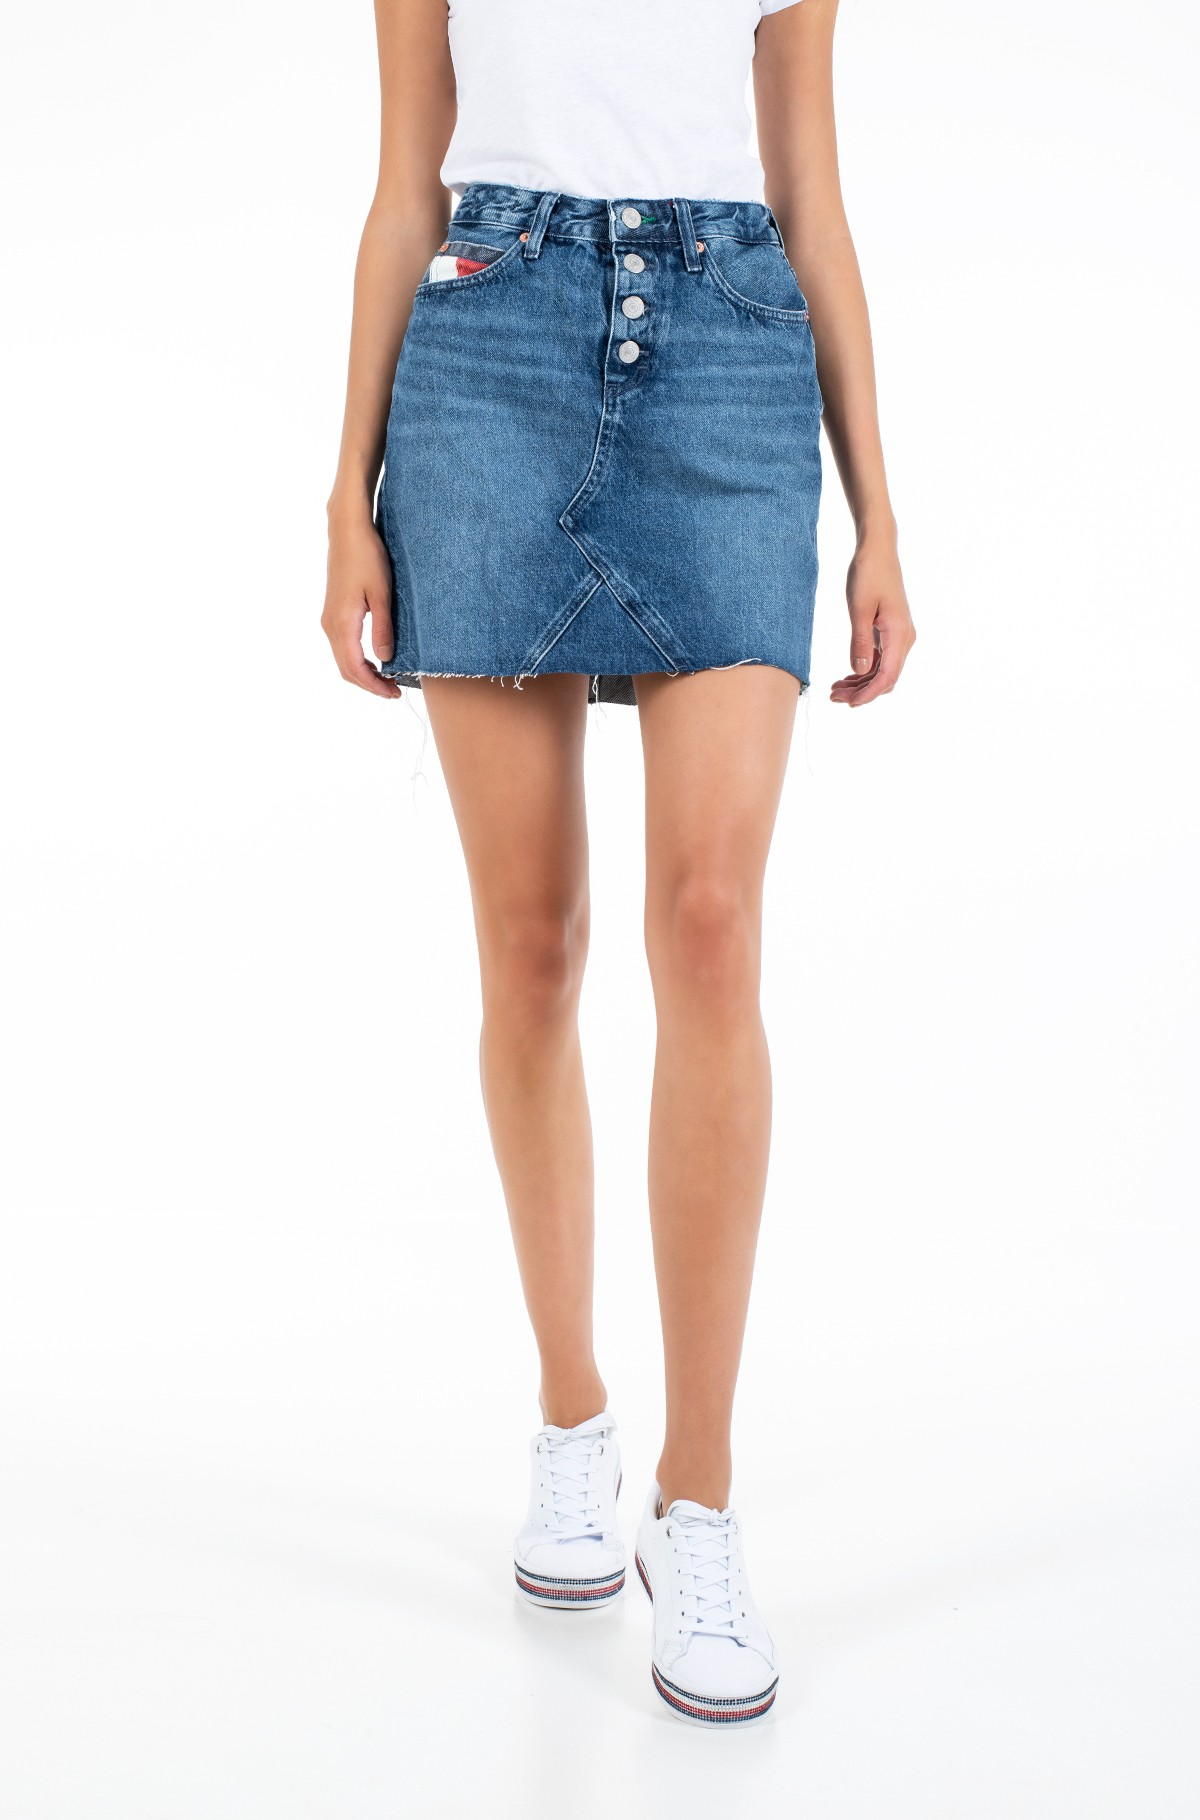 Teksaseelik SHORT DENIM SKIRT BTN FLY SVMBR-full-1